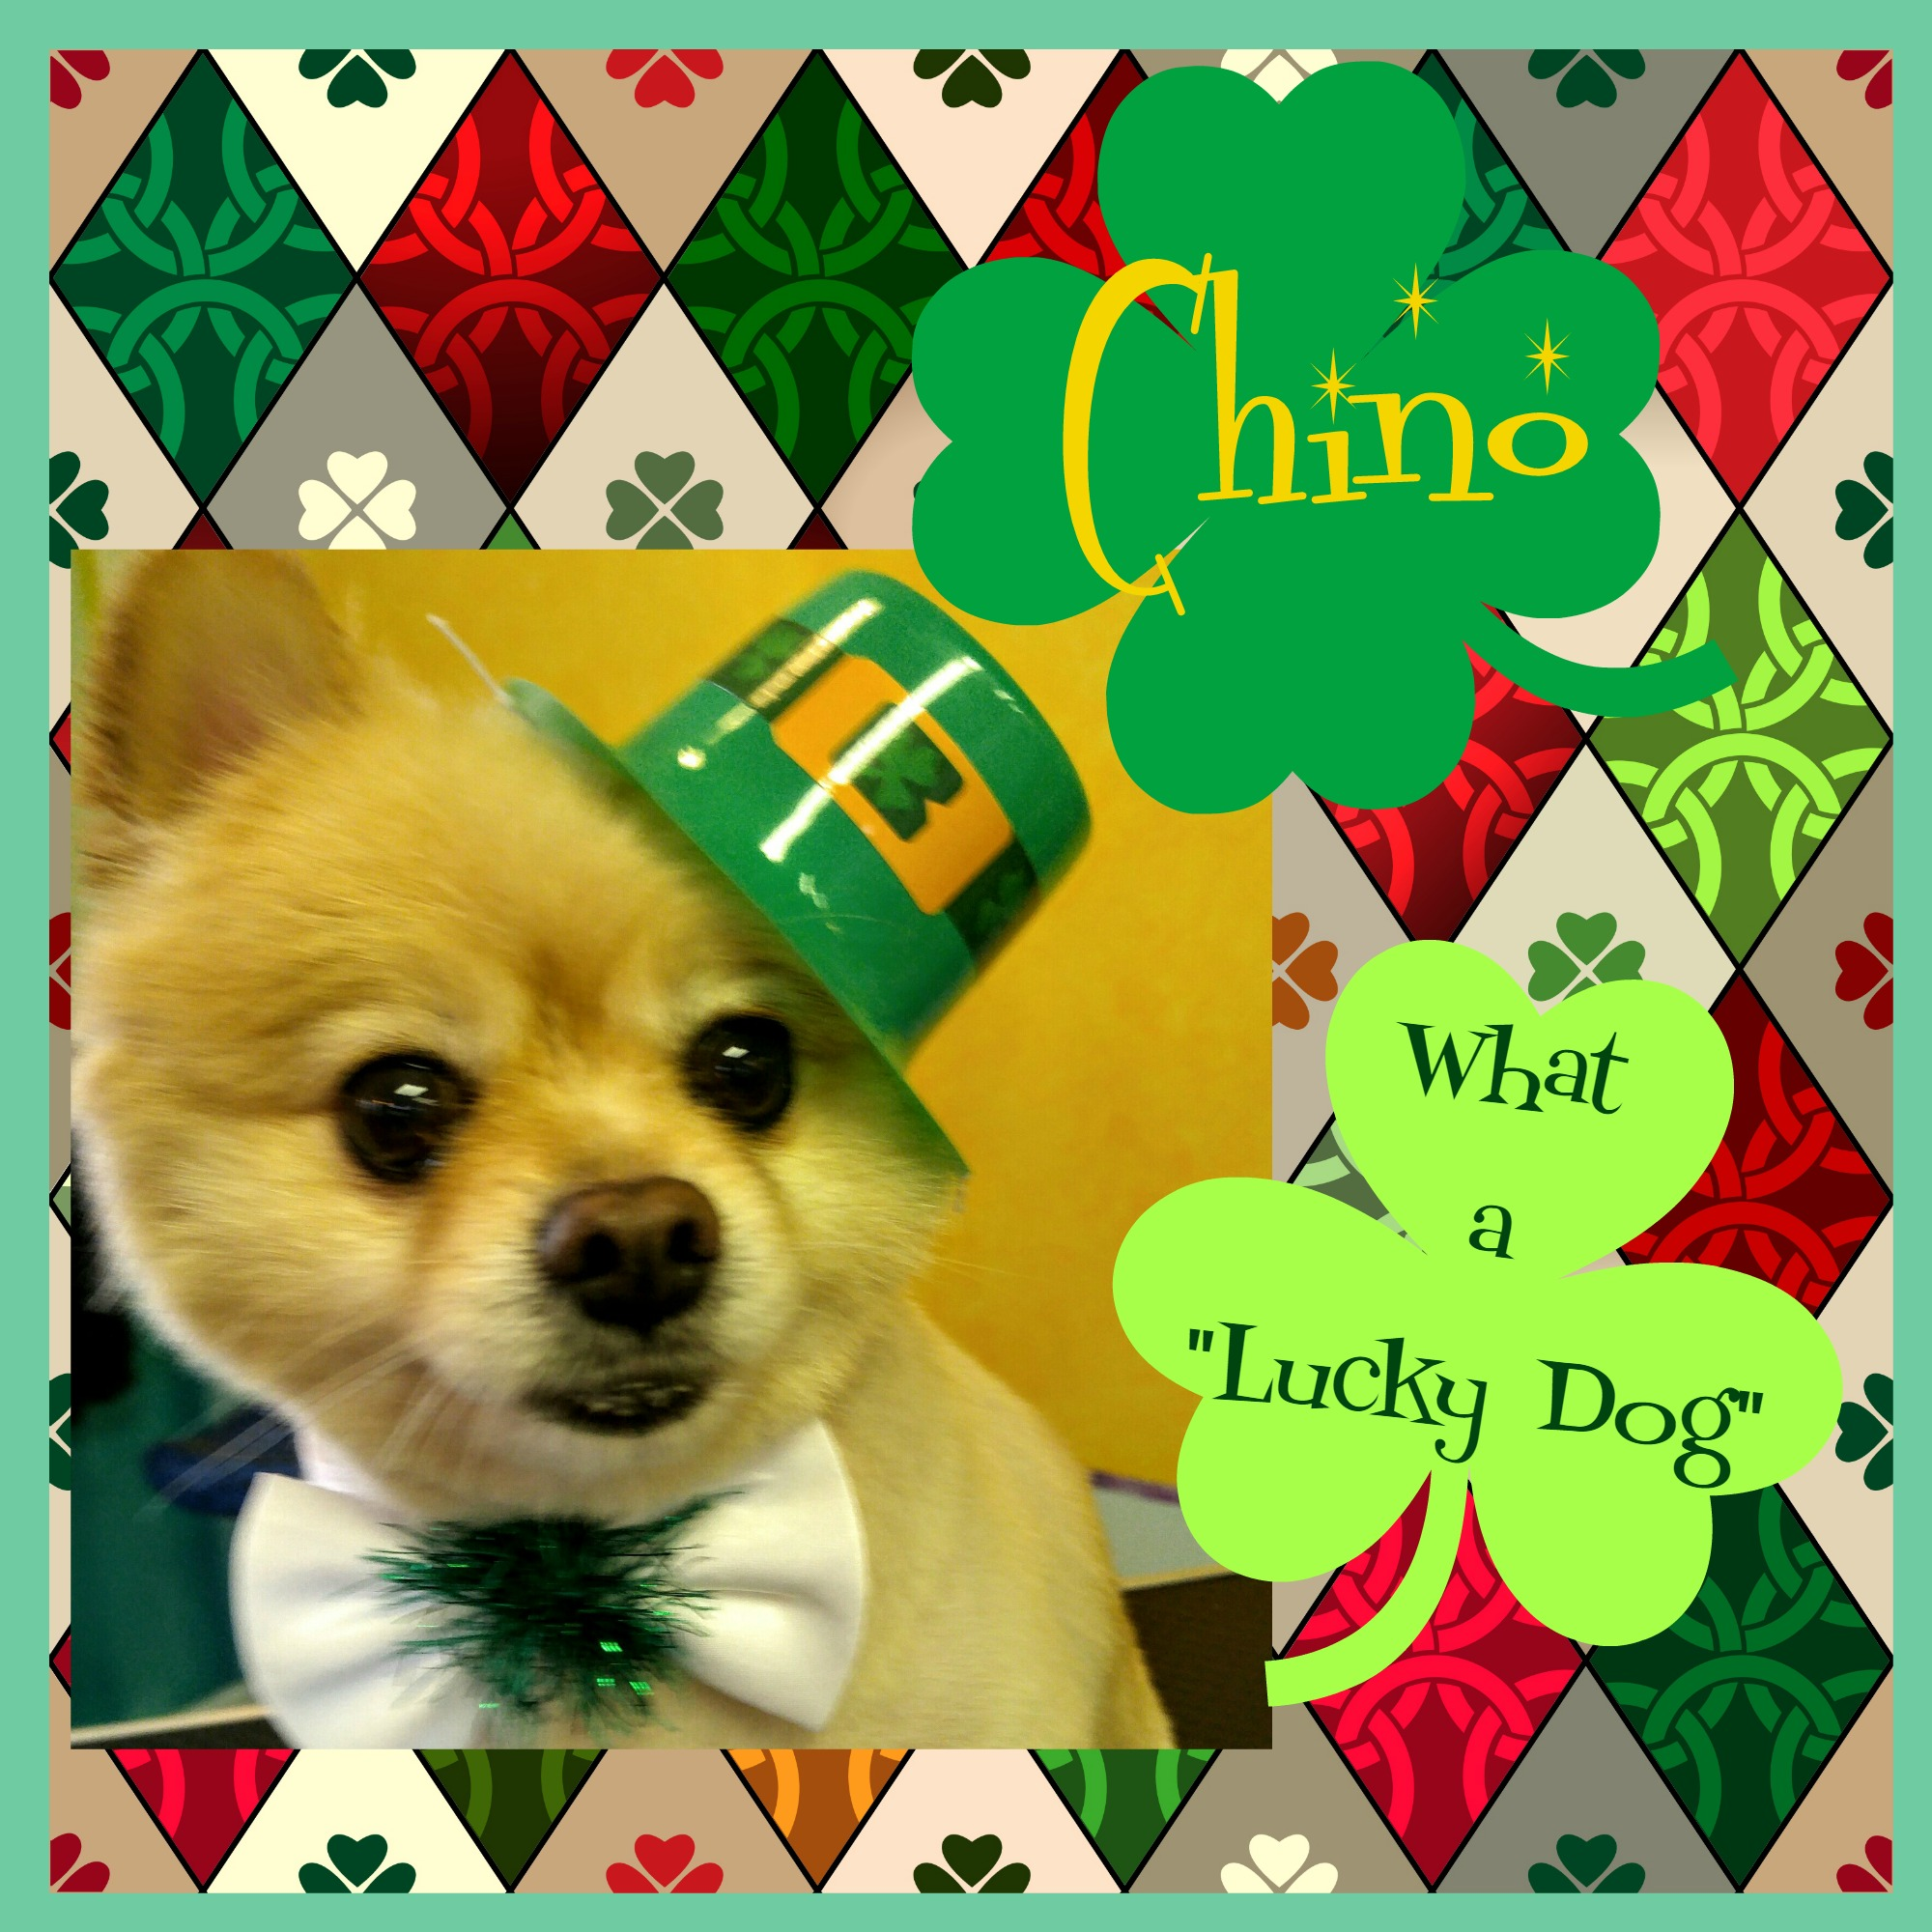 Chino Lucky Dog